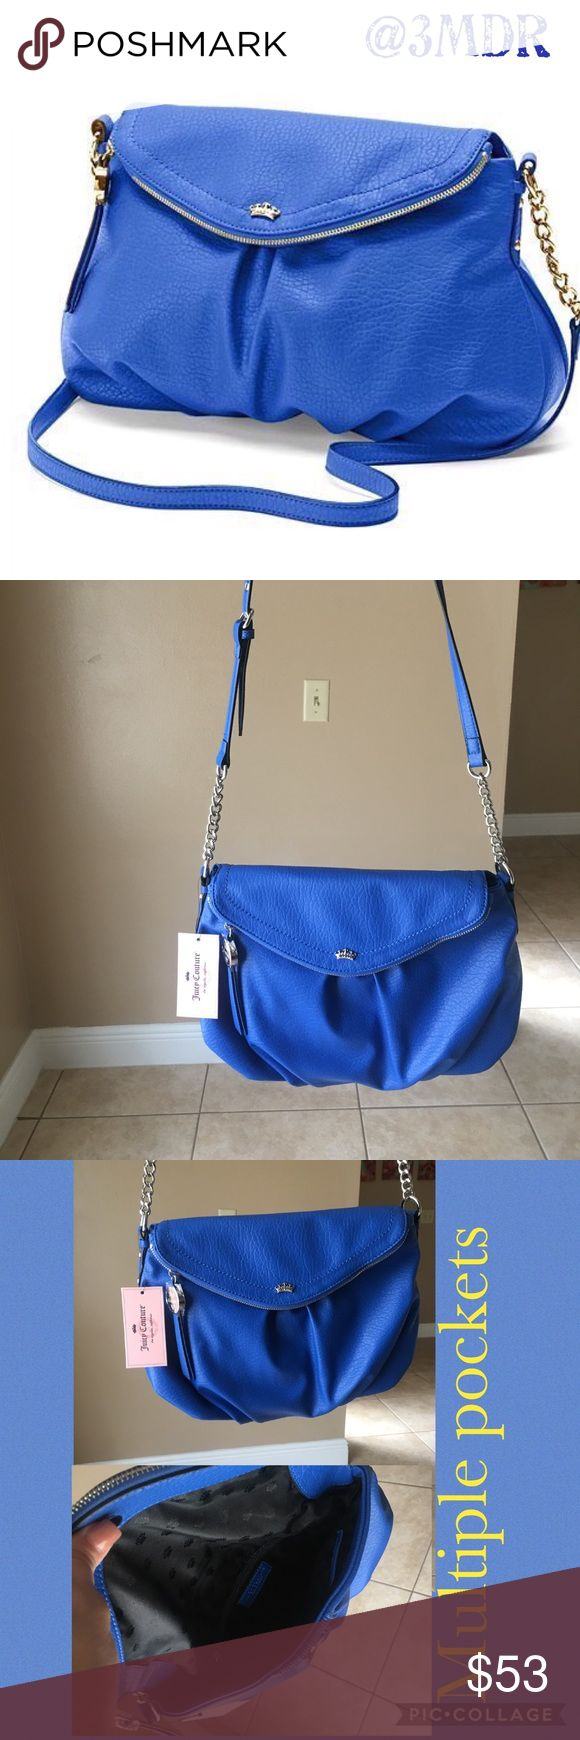 Price Drop ⬇️ Indigo Blue Juicy Couture Purse NWT NWT Juicy Couture Purse with Multiple Pockets 💙 Reasonable Offers Welcomed 💙 Bundle and Save Juicy Couture Bags